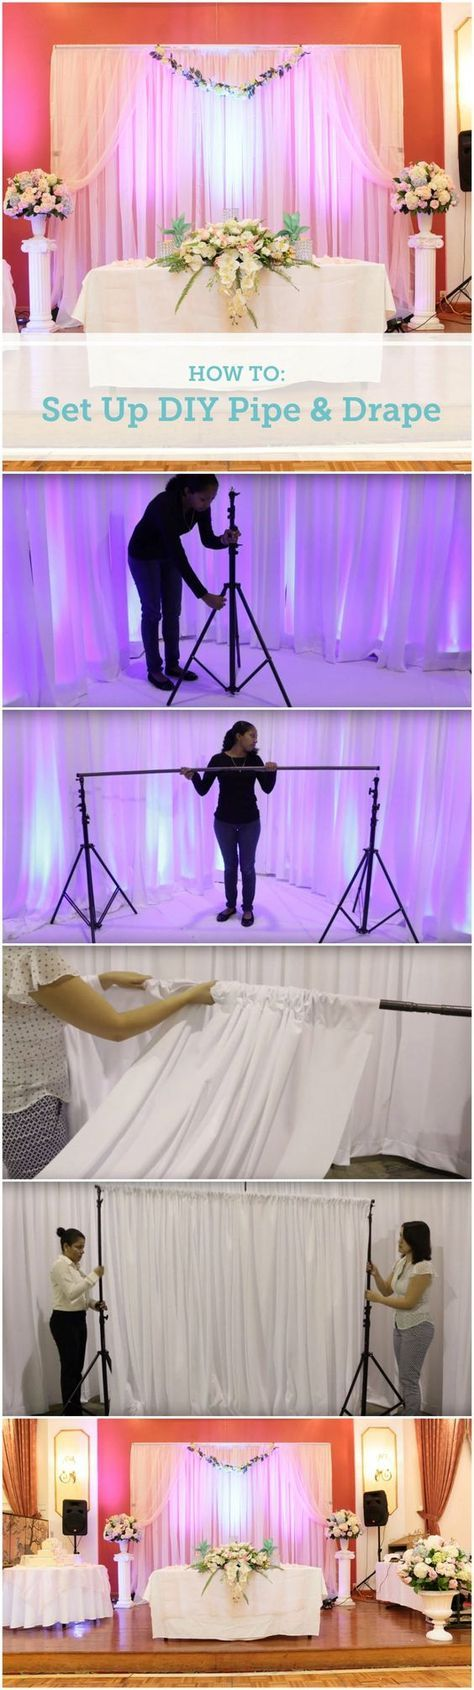 pole i tutorial pockets it backdrop and my come our of rustics road with fabric pipe top use backdrops piece a few reasons on for photography stand diy drape provides pvc drapes bottom drops the river two in